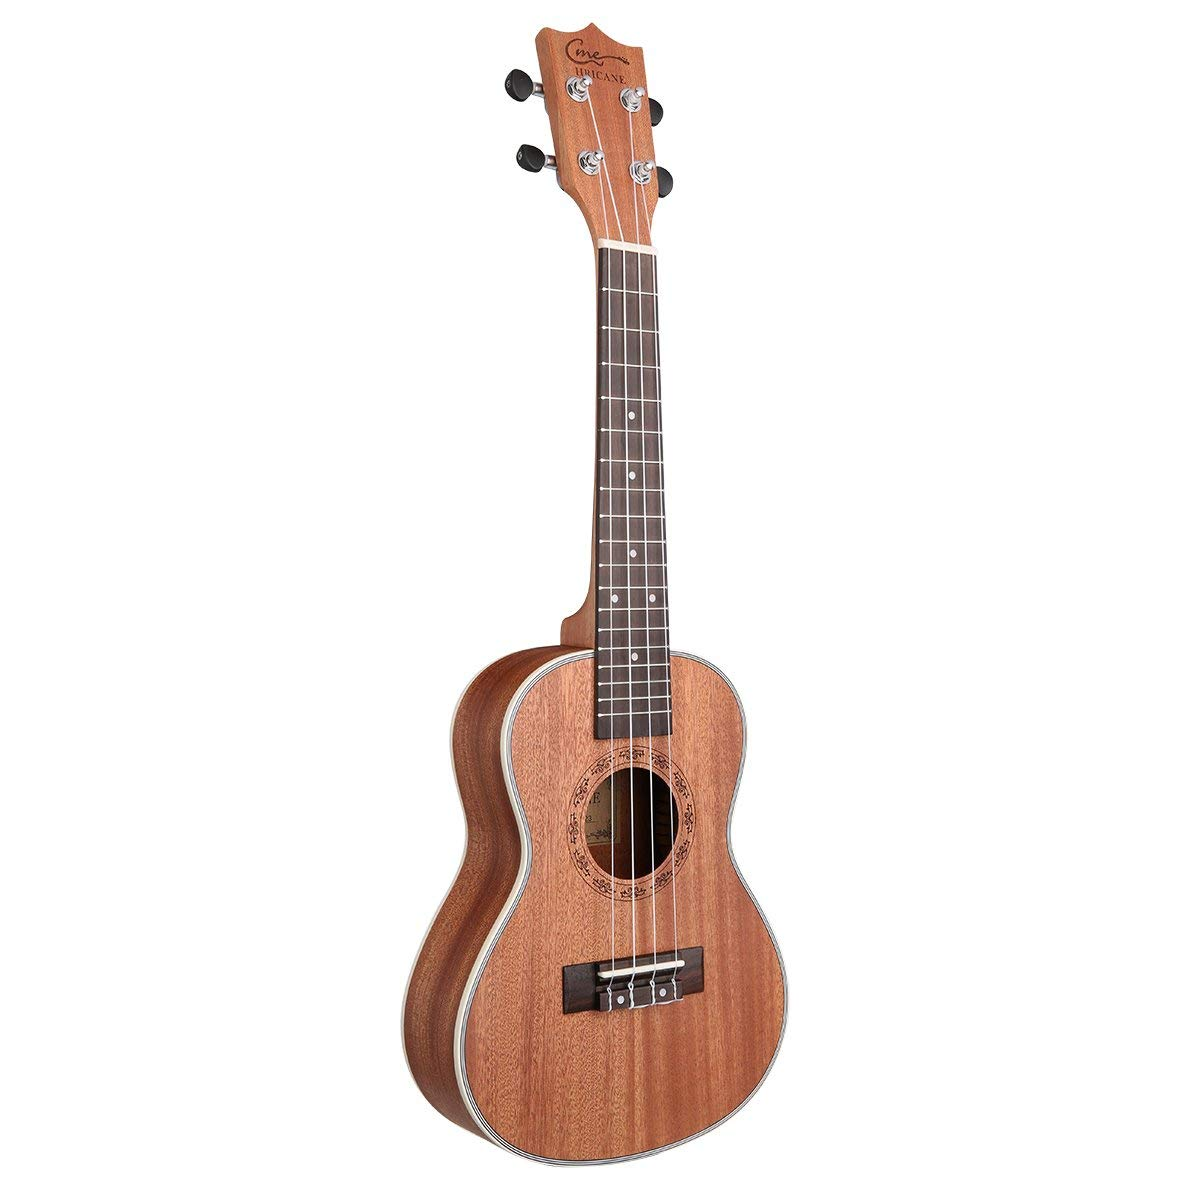 HRICANE Sapele Ukulele with Tenor size